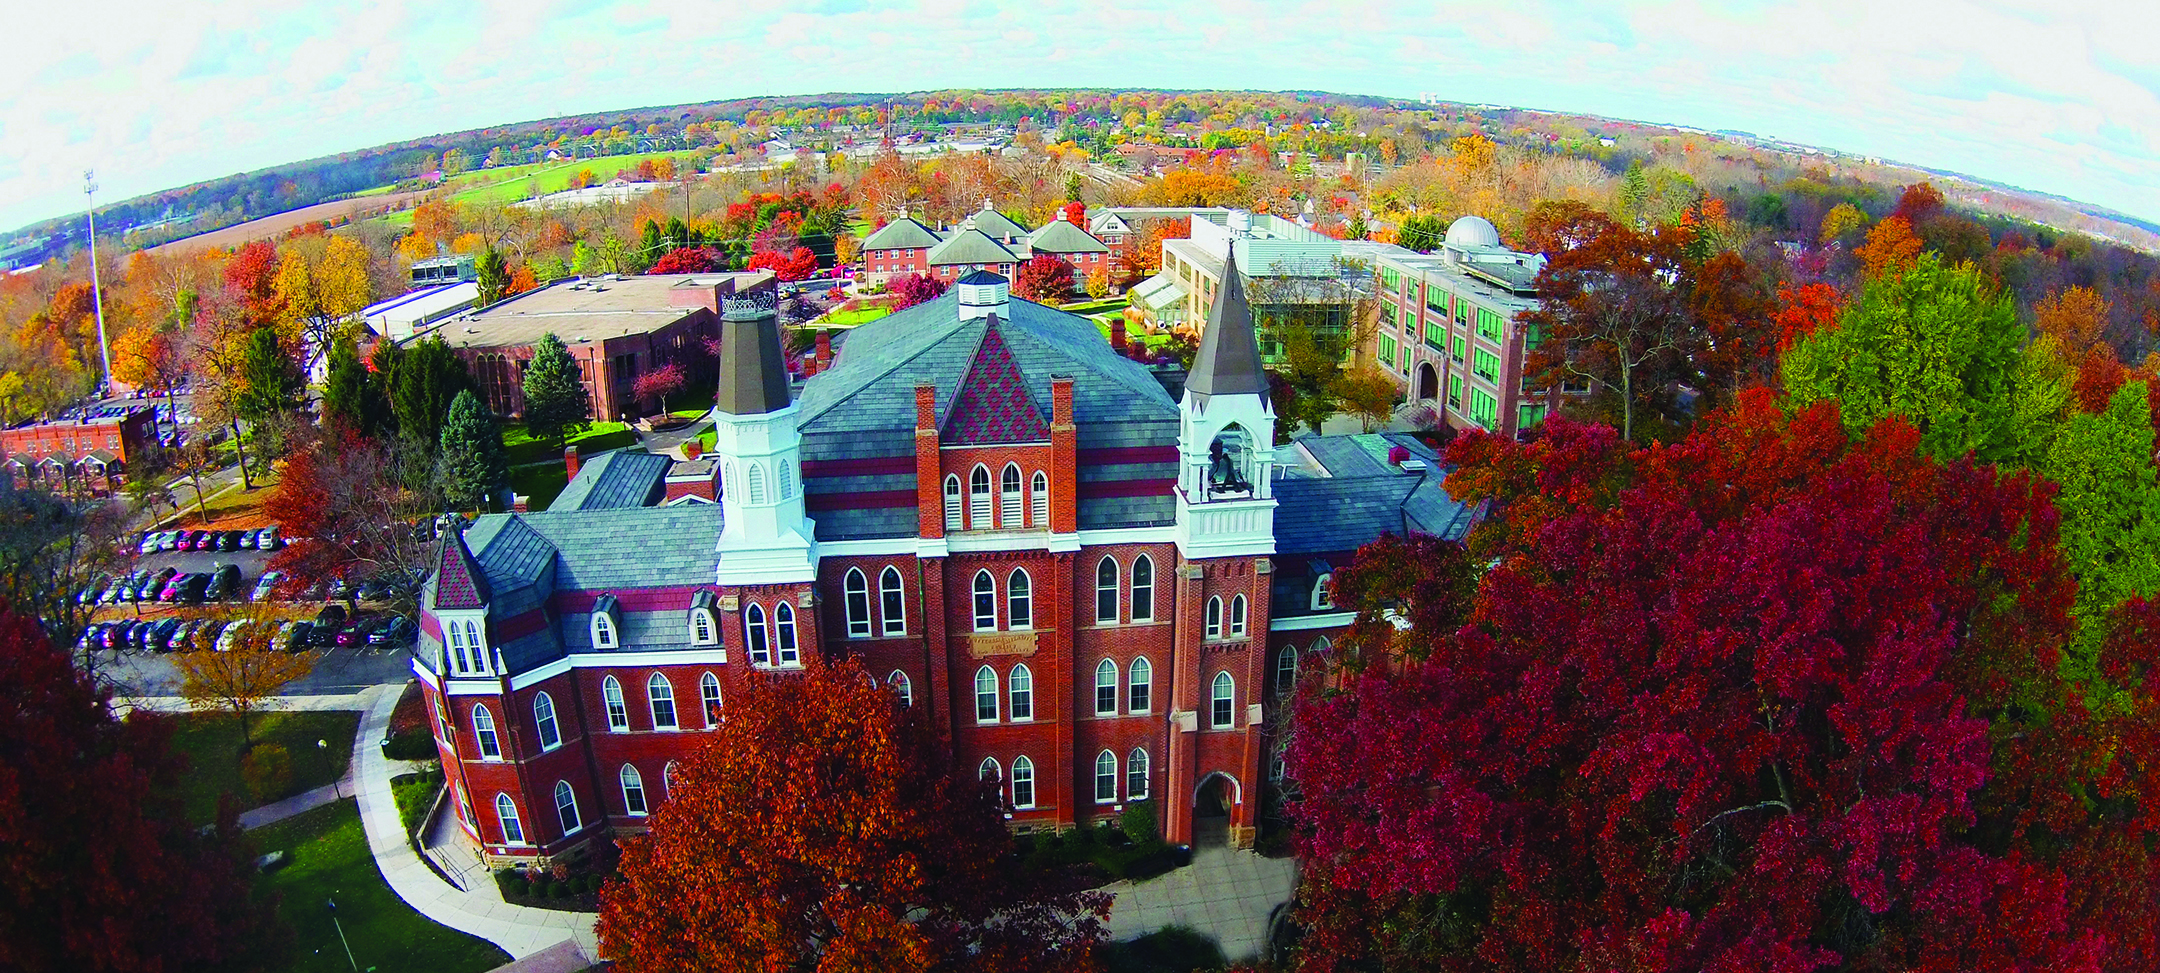 Aerial view of Otterbein